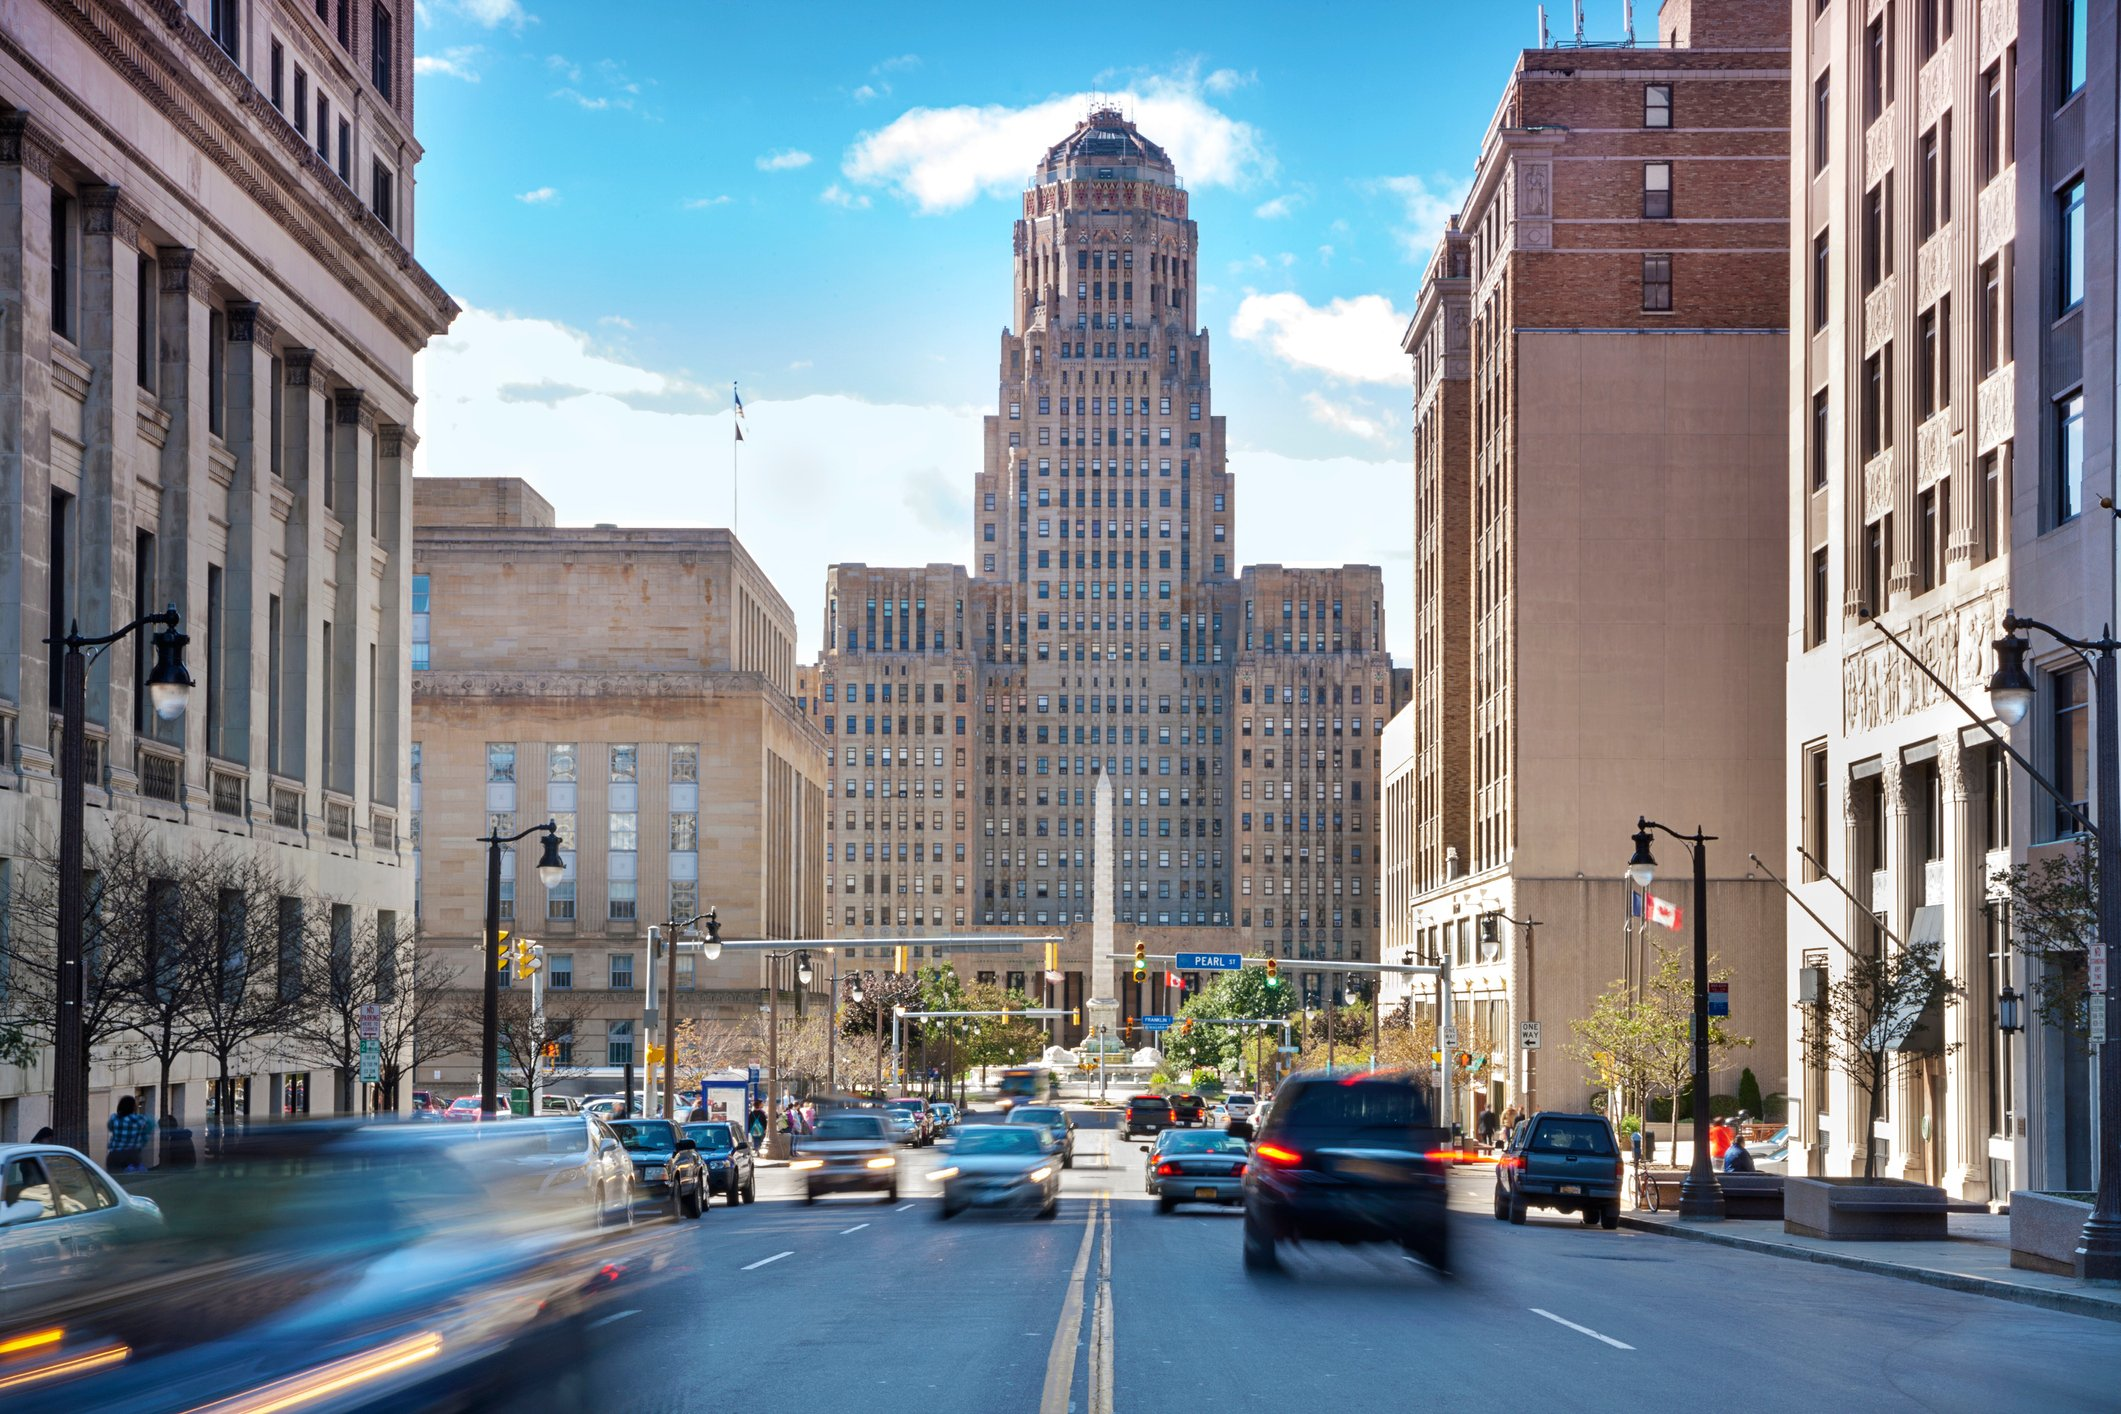 Buffalo is the second most populous city in the state of New York, behind New York City.